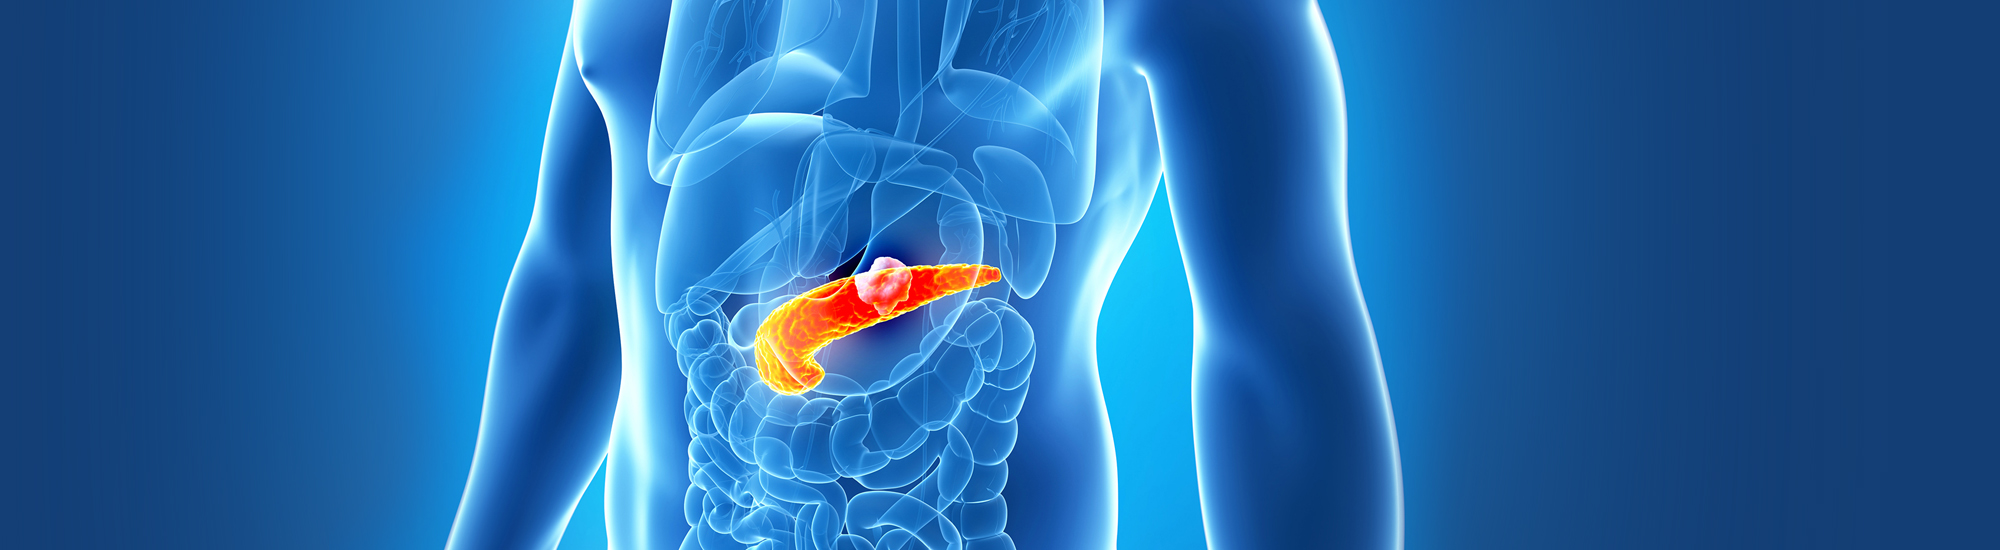 Ayurvedic treatment for Ayurvedic Treatment for Pancreatitis